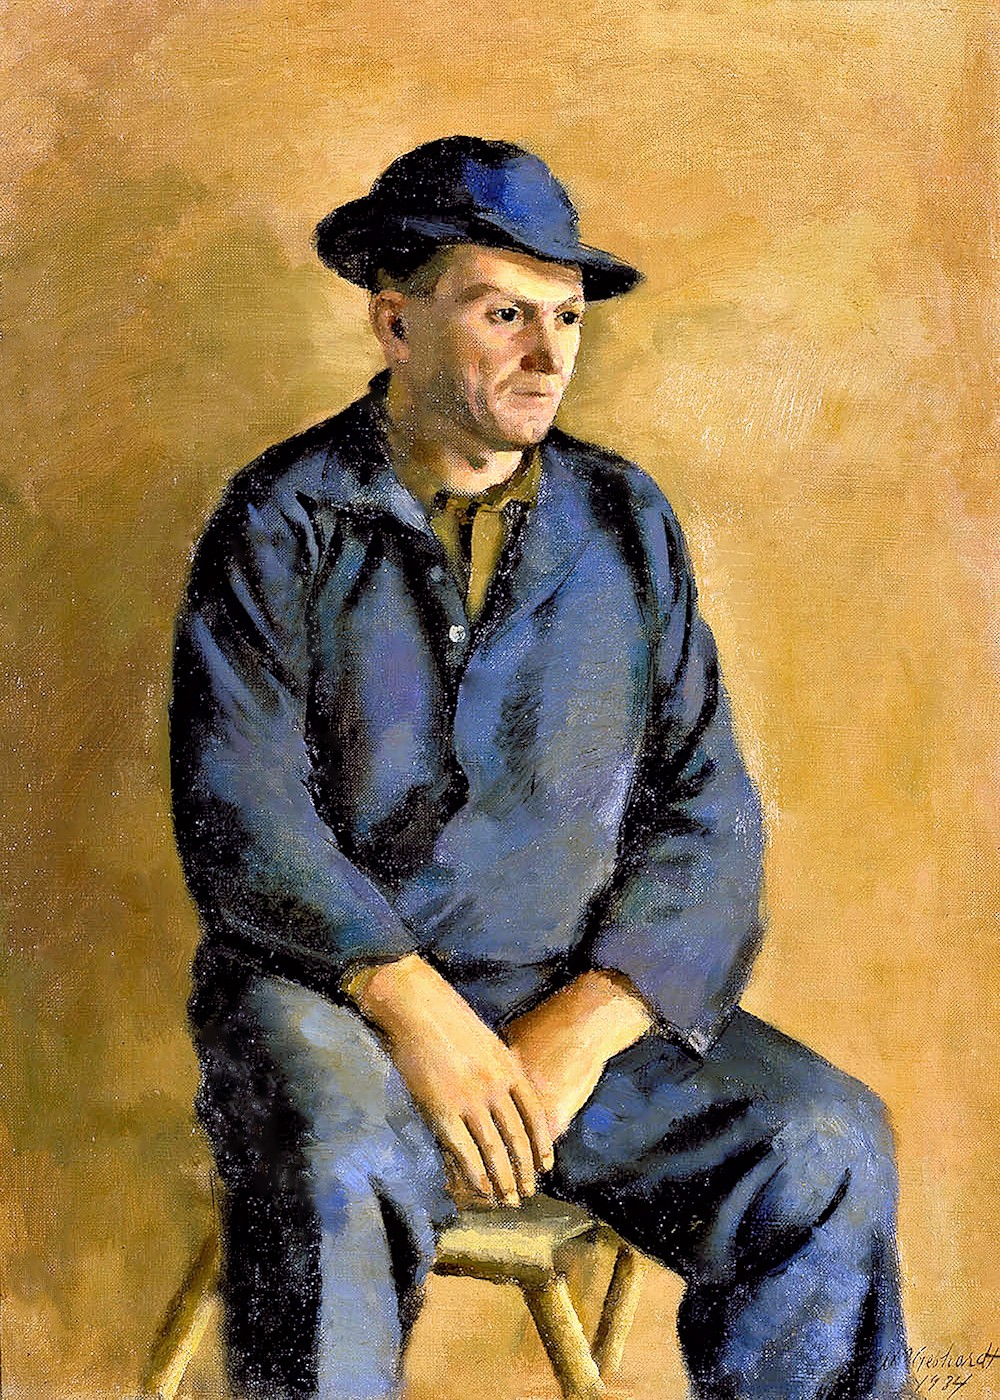 00 William Gebhardt. Joseph Roy, Portrait of a Worker. 1934